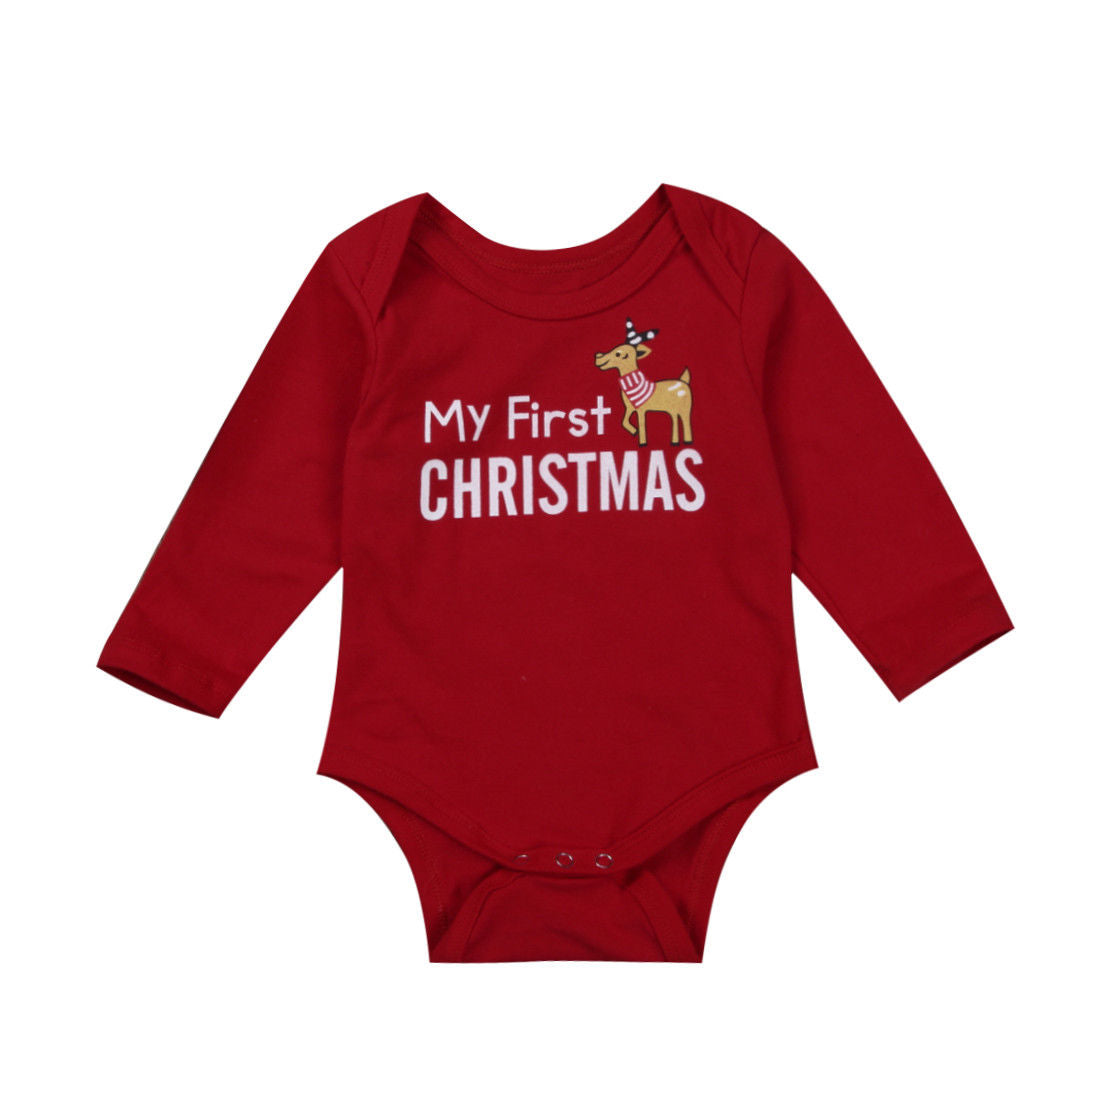 'My First Christmas' Red Cotton Onesie